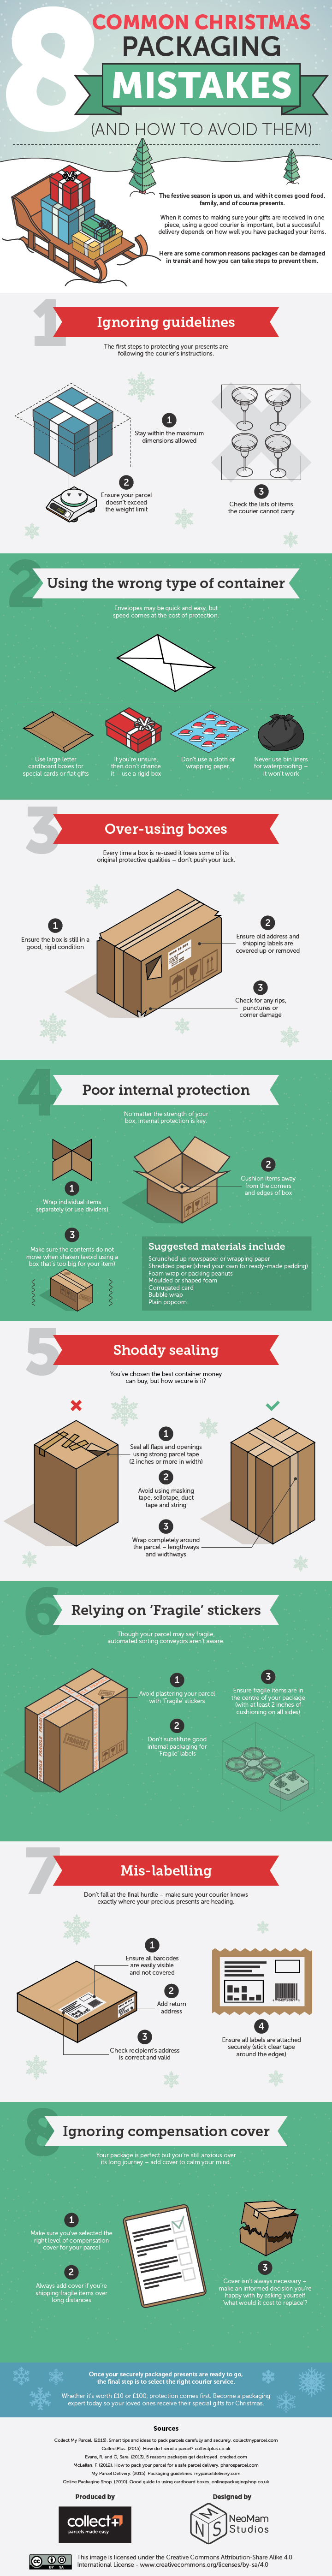 8 Common Christmas Packaging Mistakes #infographic